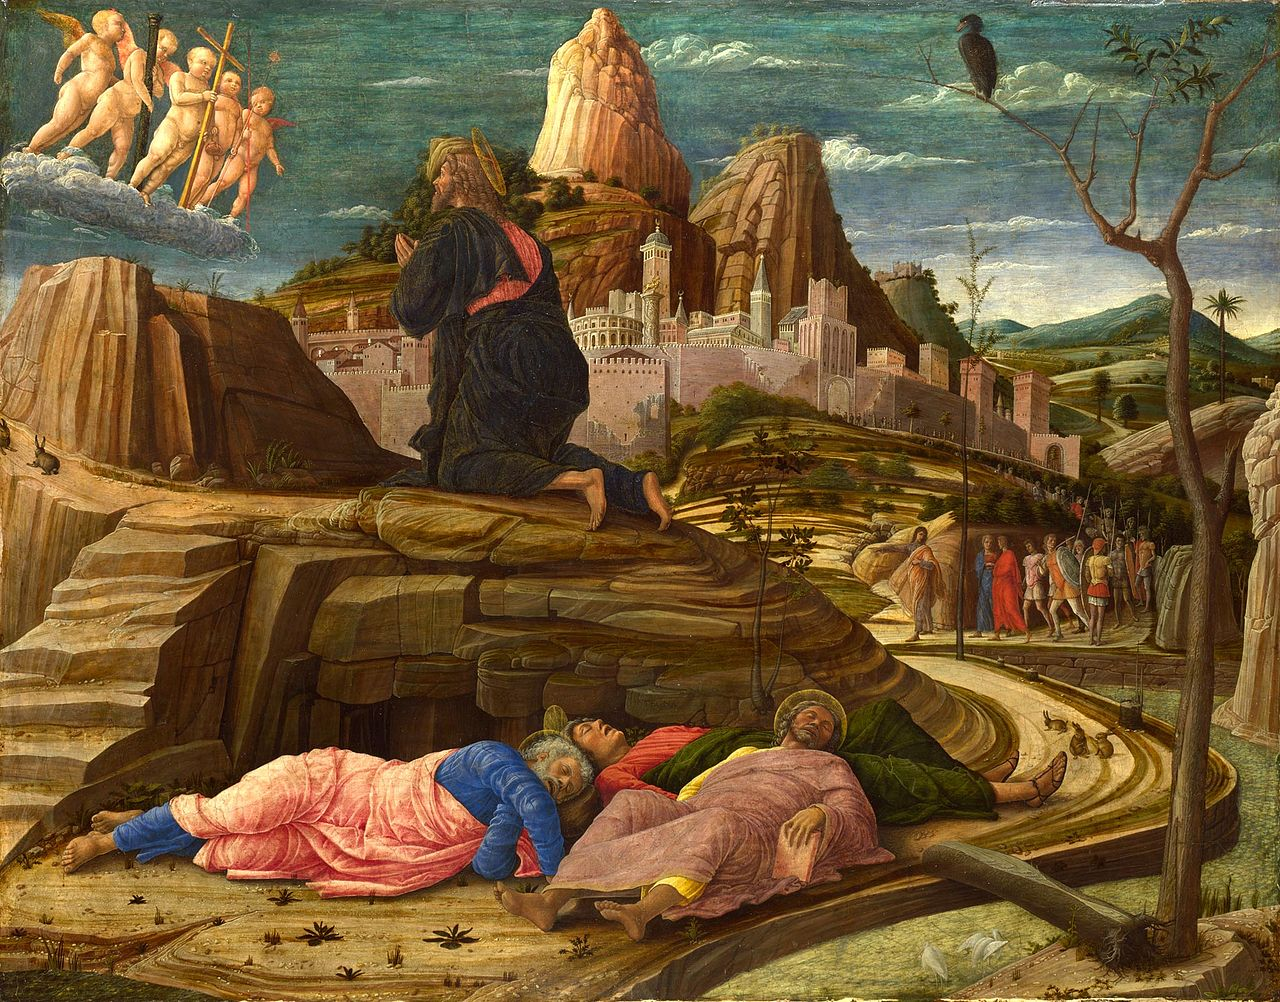 Andrea Mantegna's Agony in the Garden, circa 1460